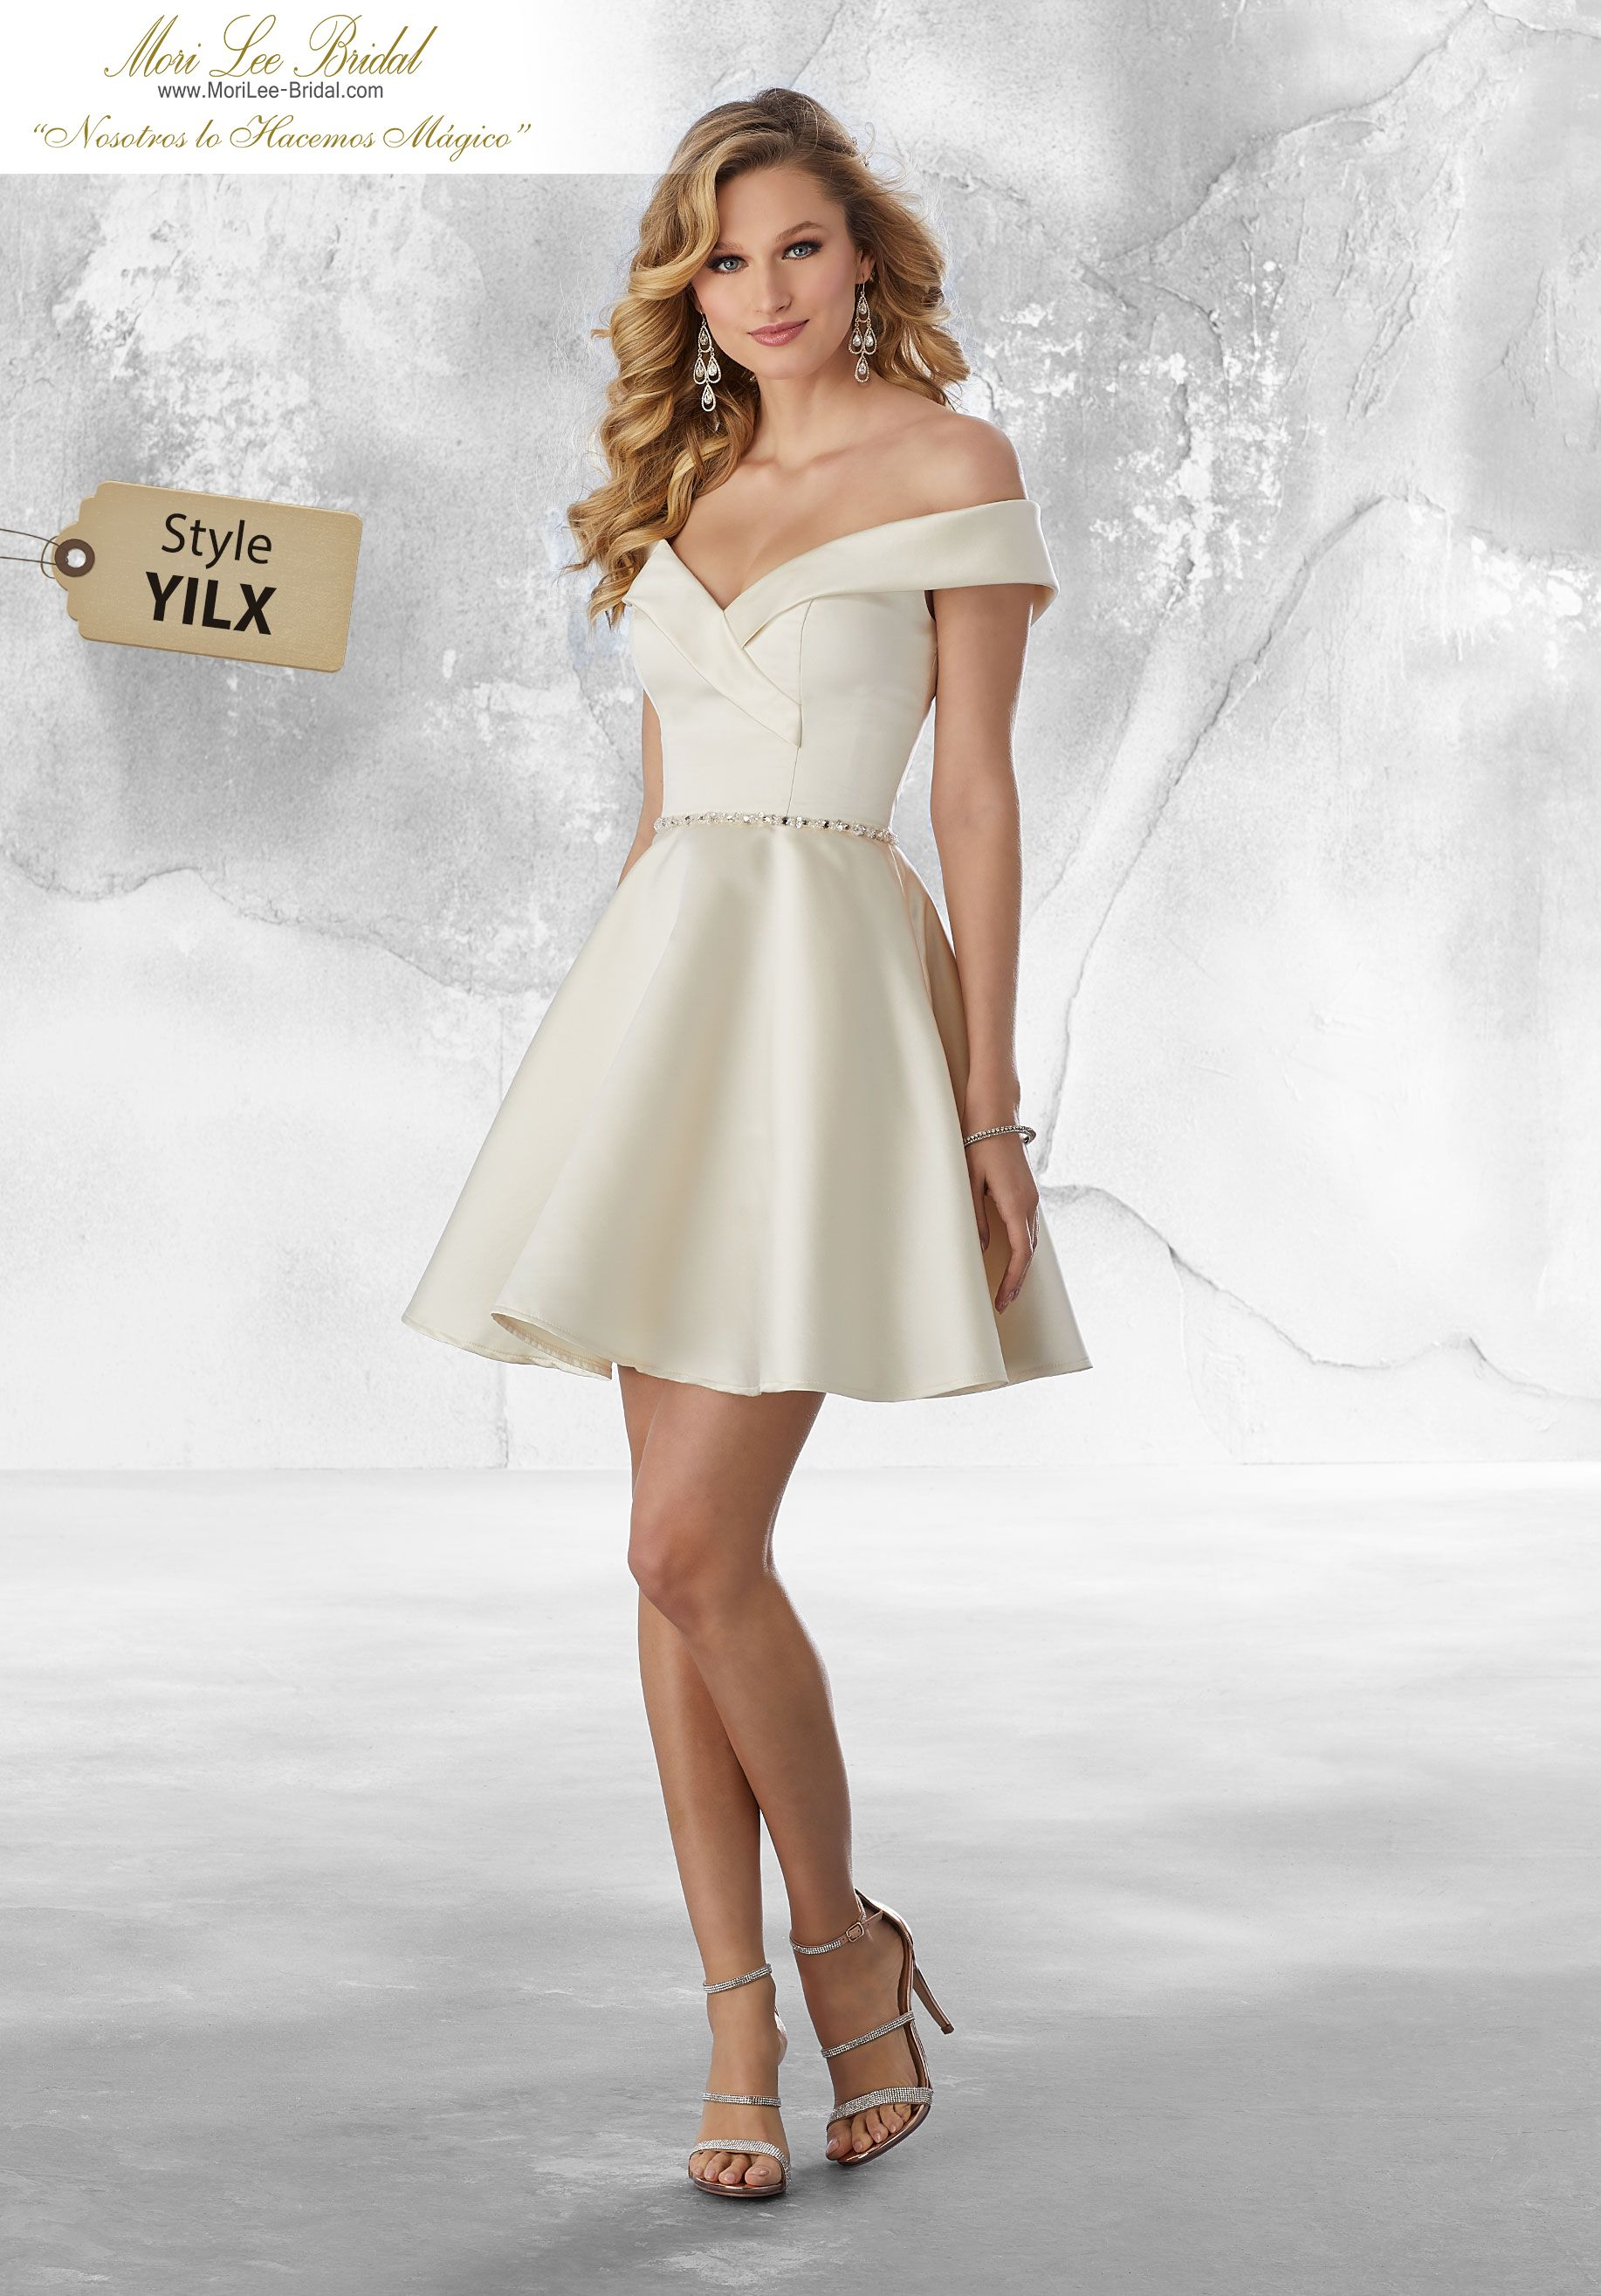 e501bc91a0 Estilo YILX Satin Party Dress with Beading Satin Damas Dress Featuring a  Sophisticated Off the Shoulder V-Neckline with Beading at the Waist Colors   Emerald ...